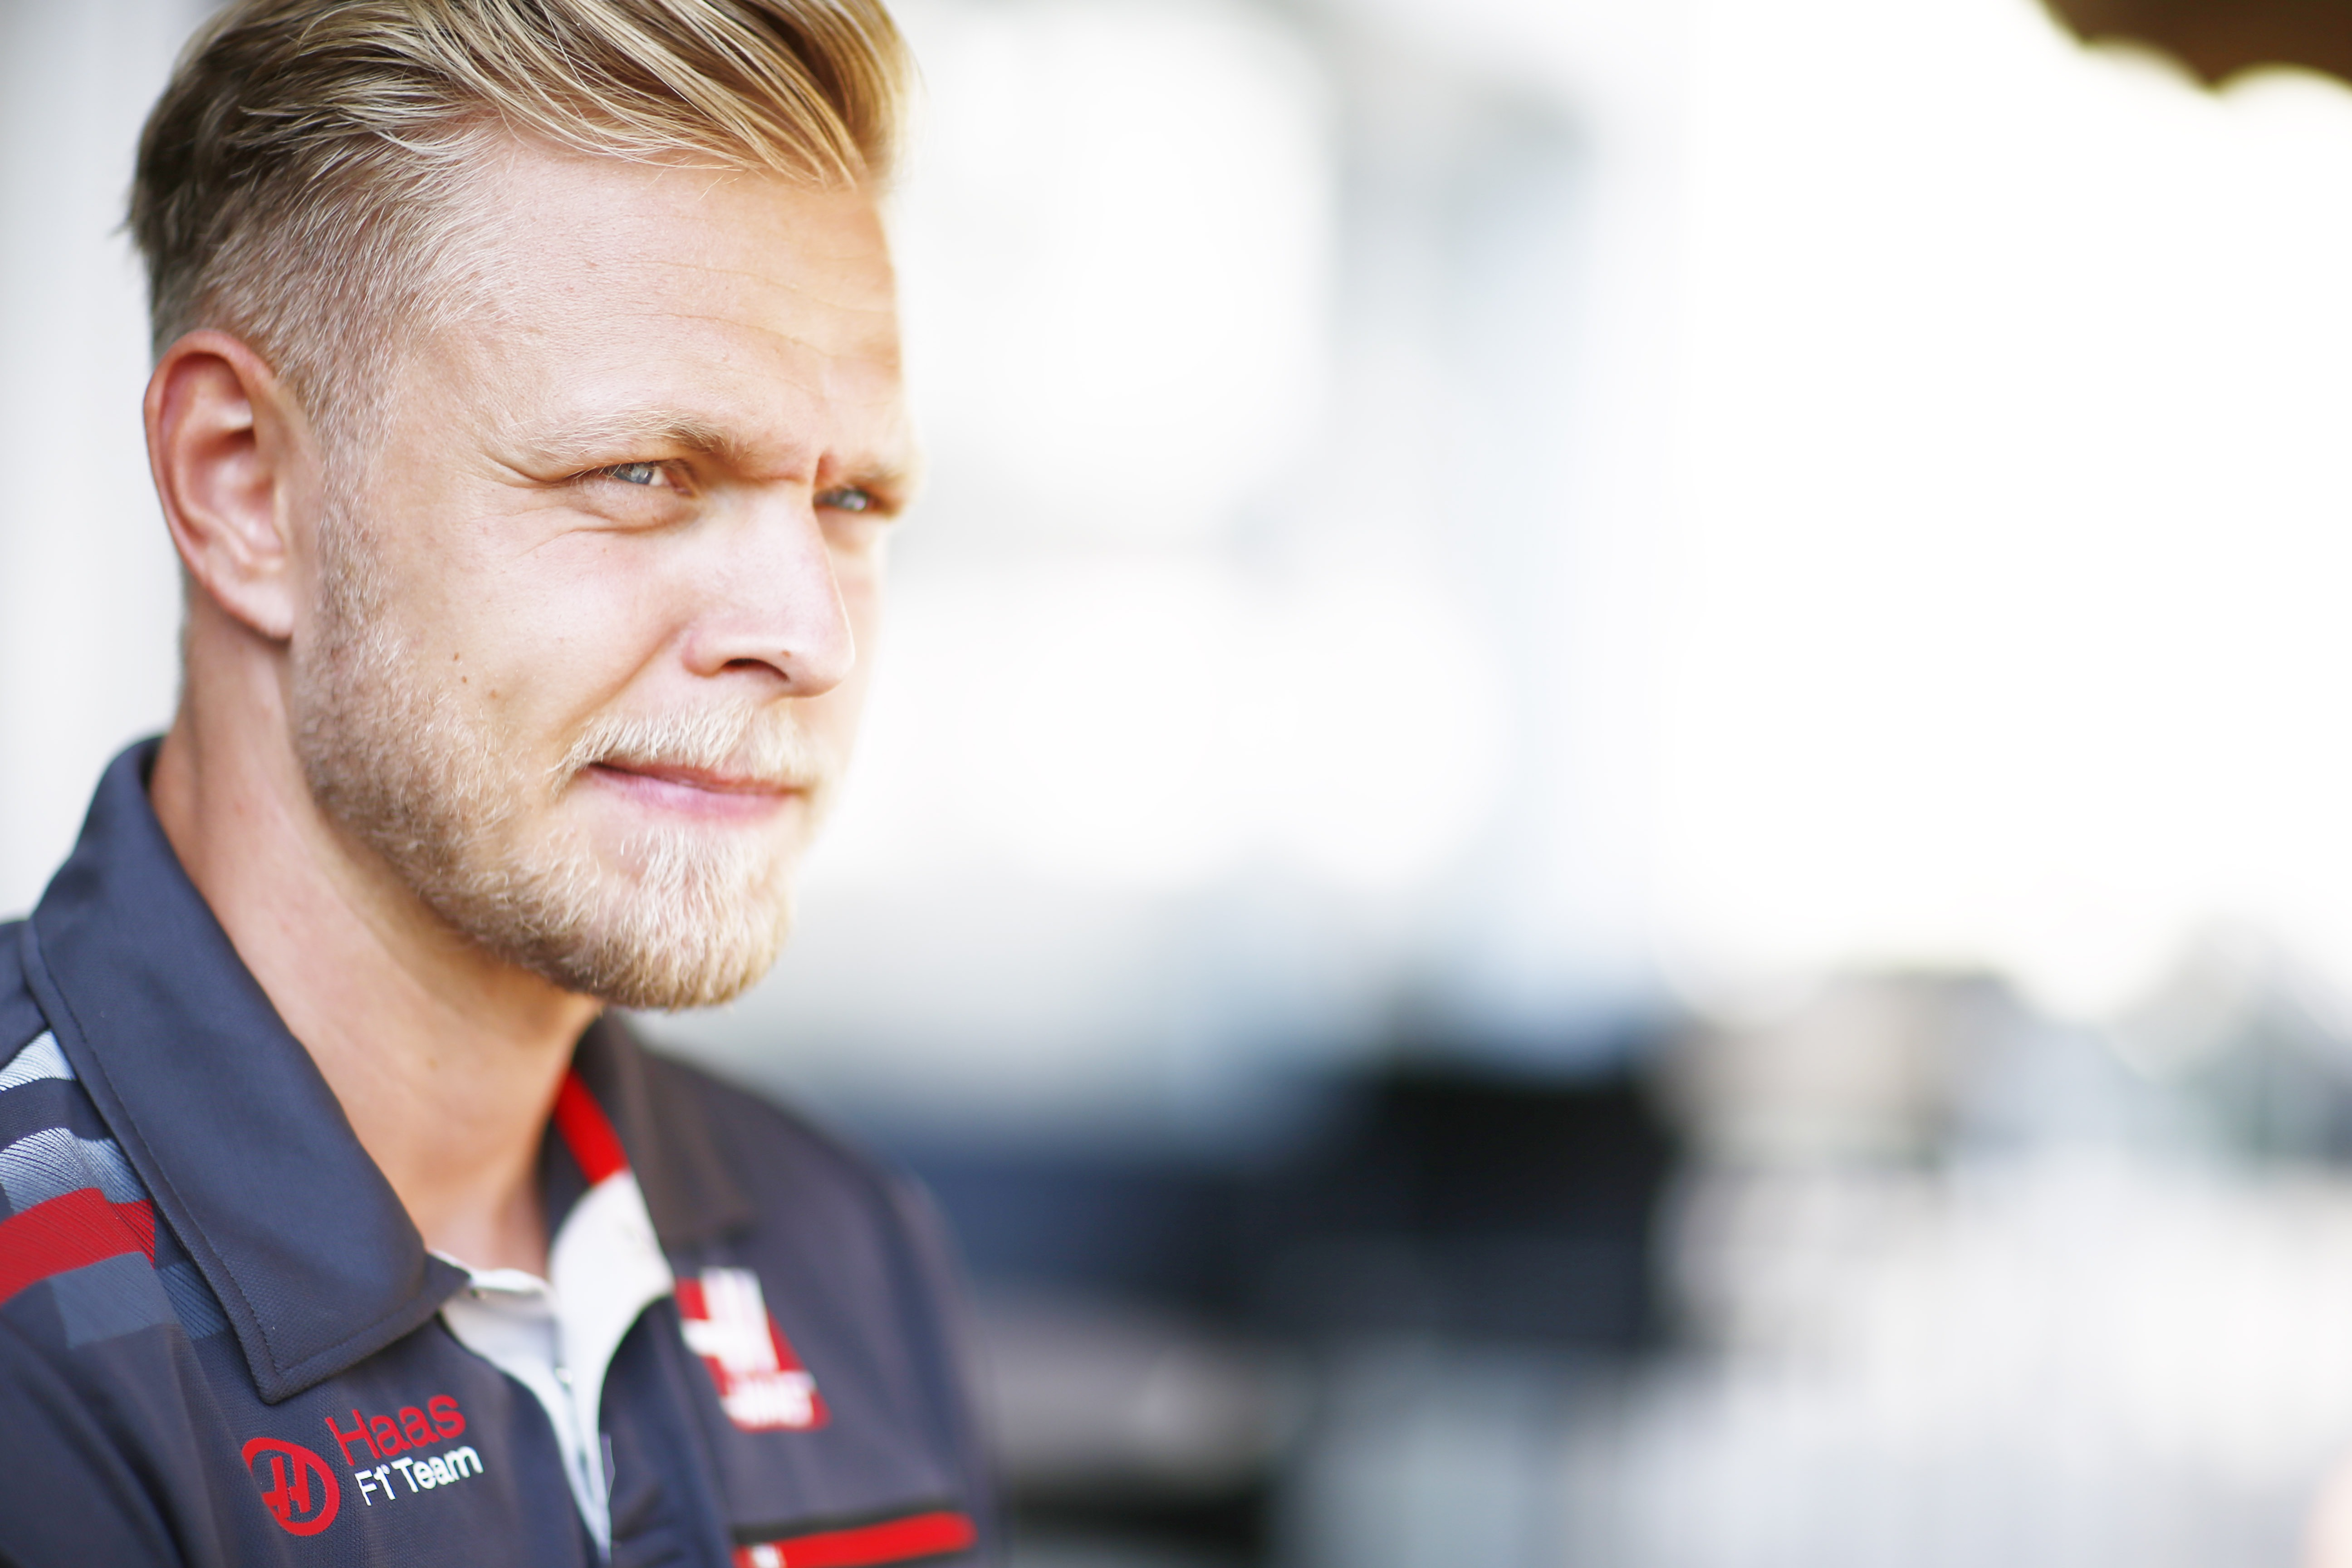 Magnussen Has 2 Year Contract With Haas